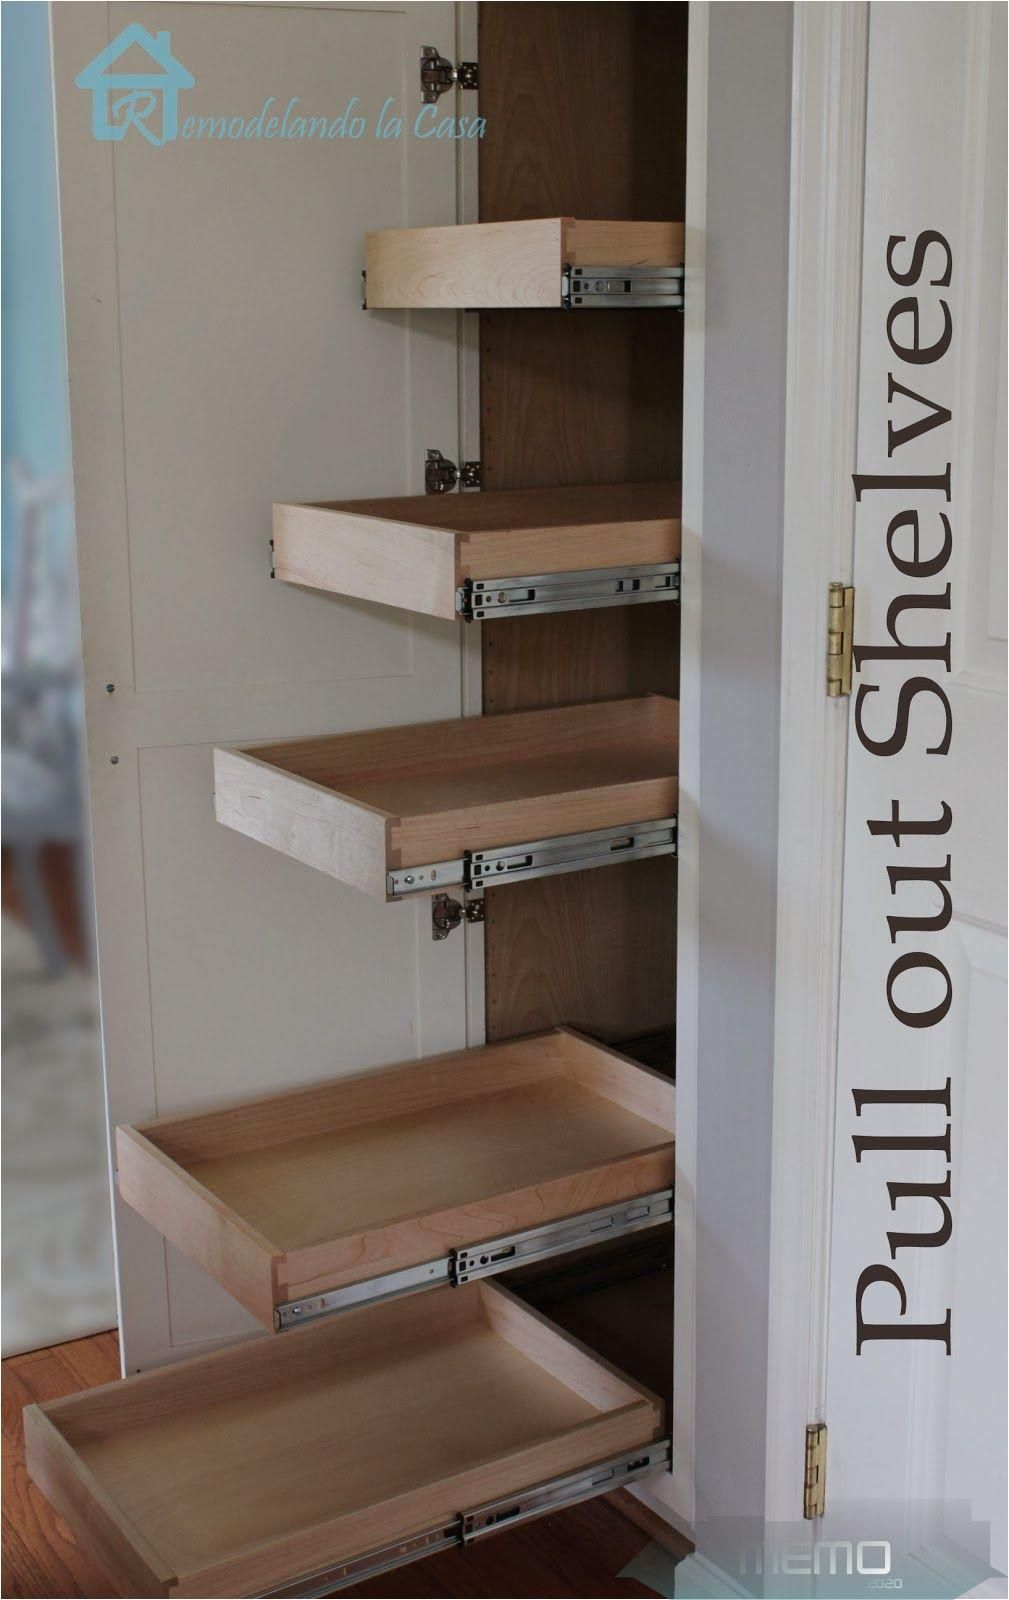 Jan 7, 2014 How to install pull out shelves in skinny